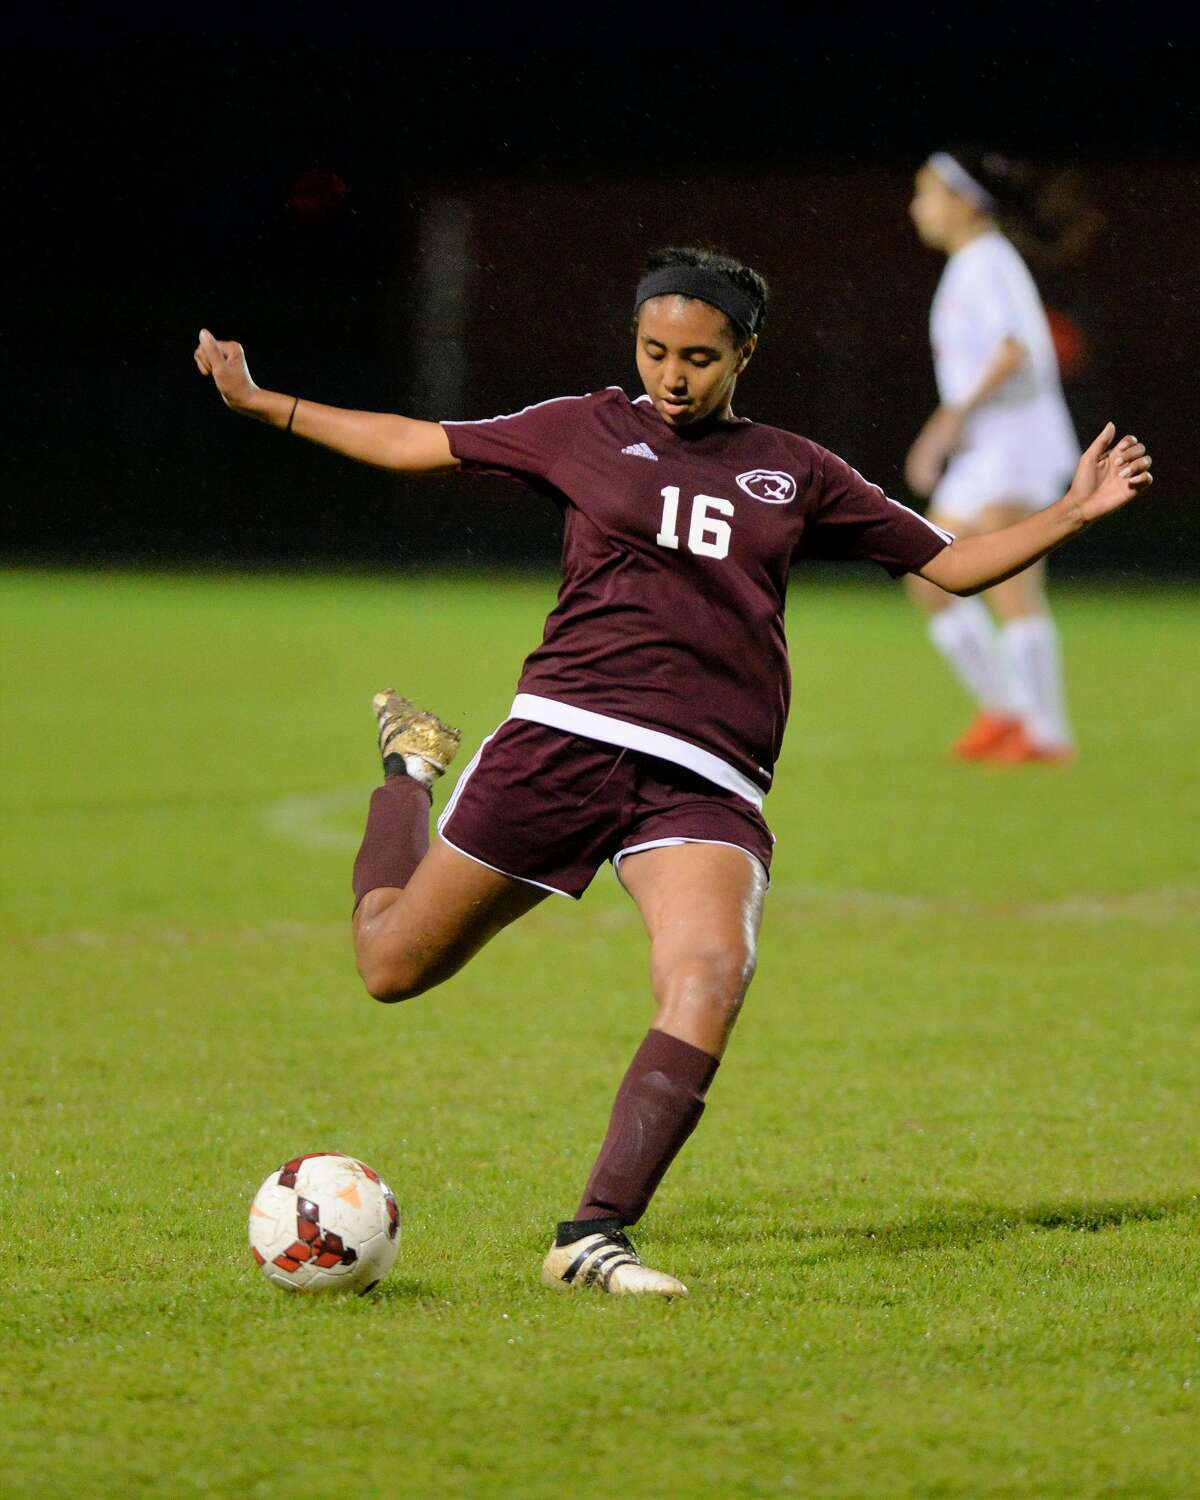 Sabrina Yohannes (16) of Kempner passes a ball during the first half of a girls high school soccer game between the Travis Tigers and the Kempner Cougars on Friday, March 10, 2017 at Travis High School, Richmond, TX.